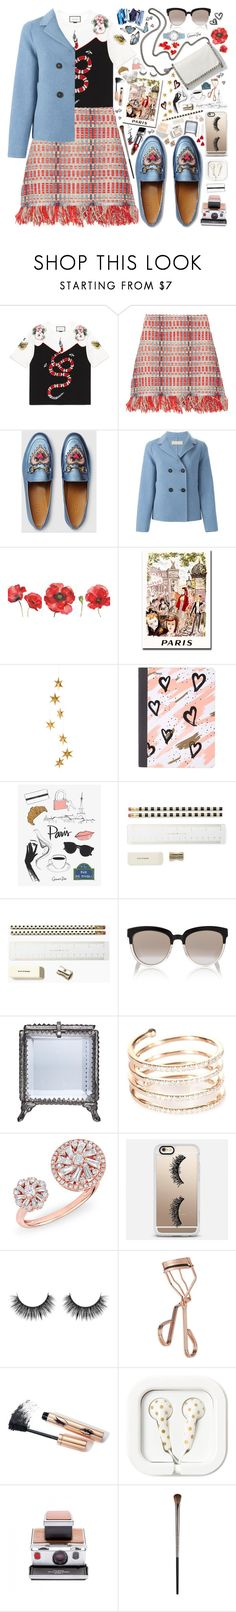 """Begin Again"" by beautifully-eclectic ❤ liked on Polyvore featuring Gucci, Tory Burch, STELLA McCARTNEY, Massimo Alba, WALL, Livingly, Mead, Kate Spade, Christian Dior and Home Decorators Collection"